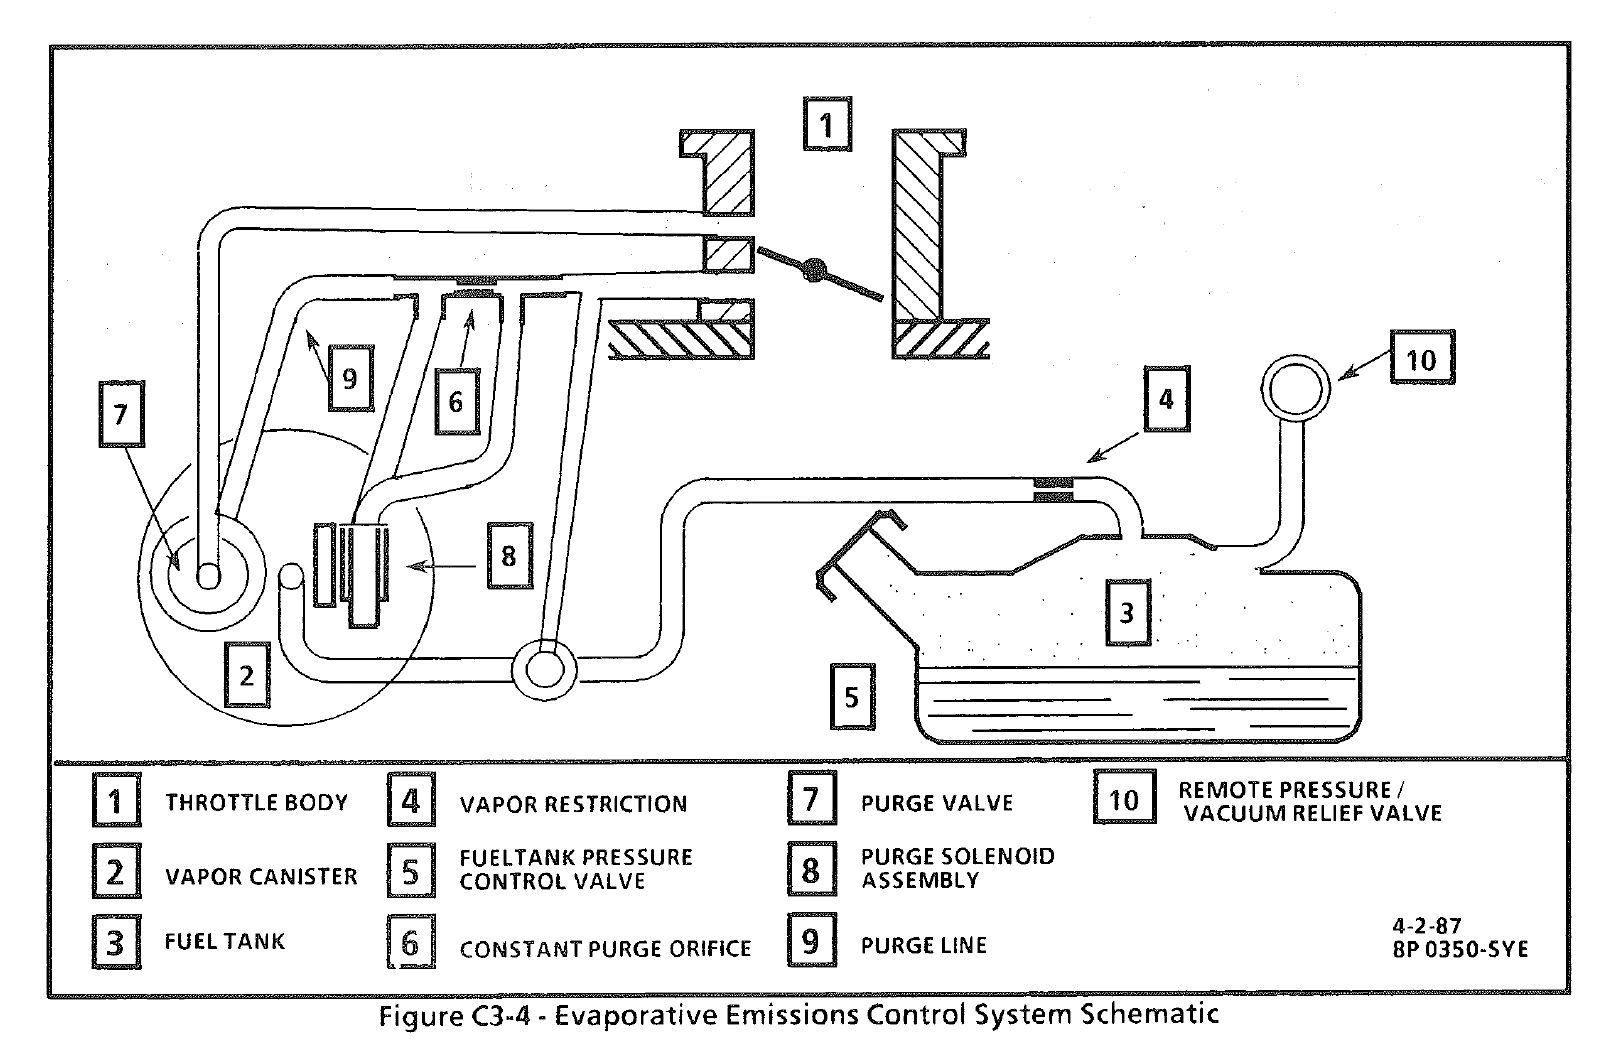 Suzuki Radio Wiring Diagrams Torzone Org on 2000 jetta fuel pump relay location